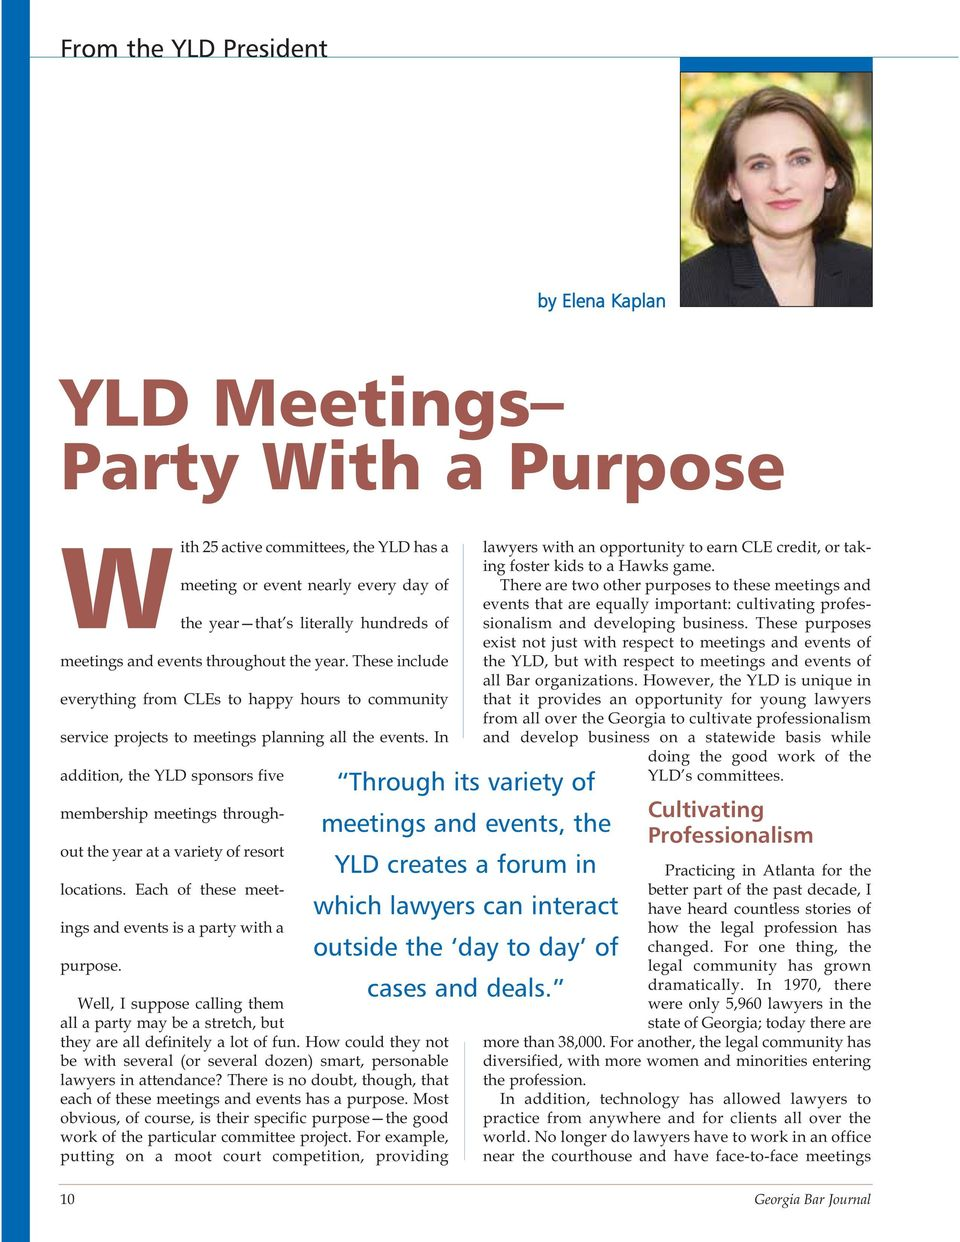 In addition, the YLD sponsors five membership meetings throughout the year at a variety of resort locations. Each of these meetings and events is a party with a purpose.